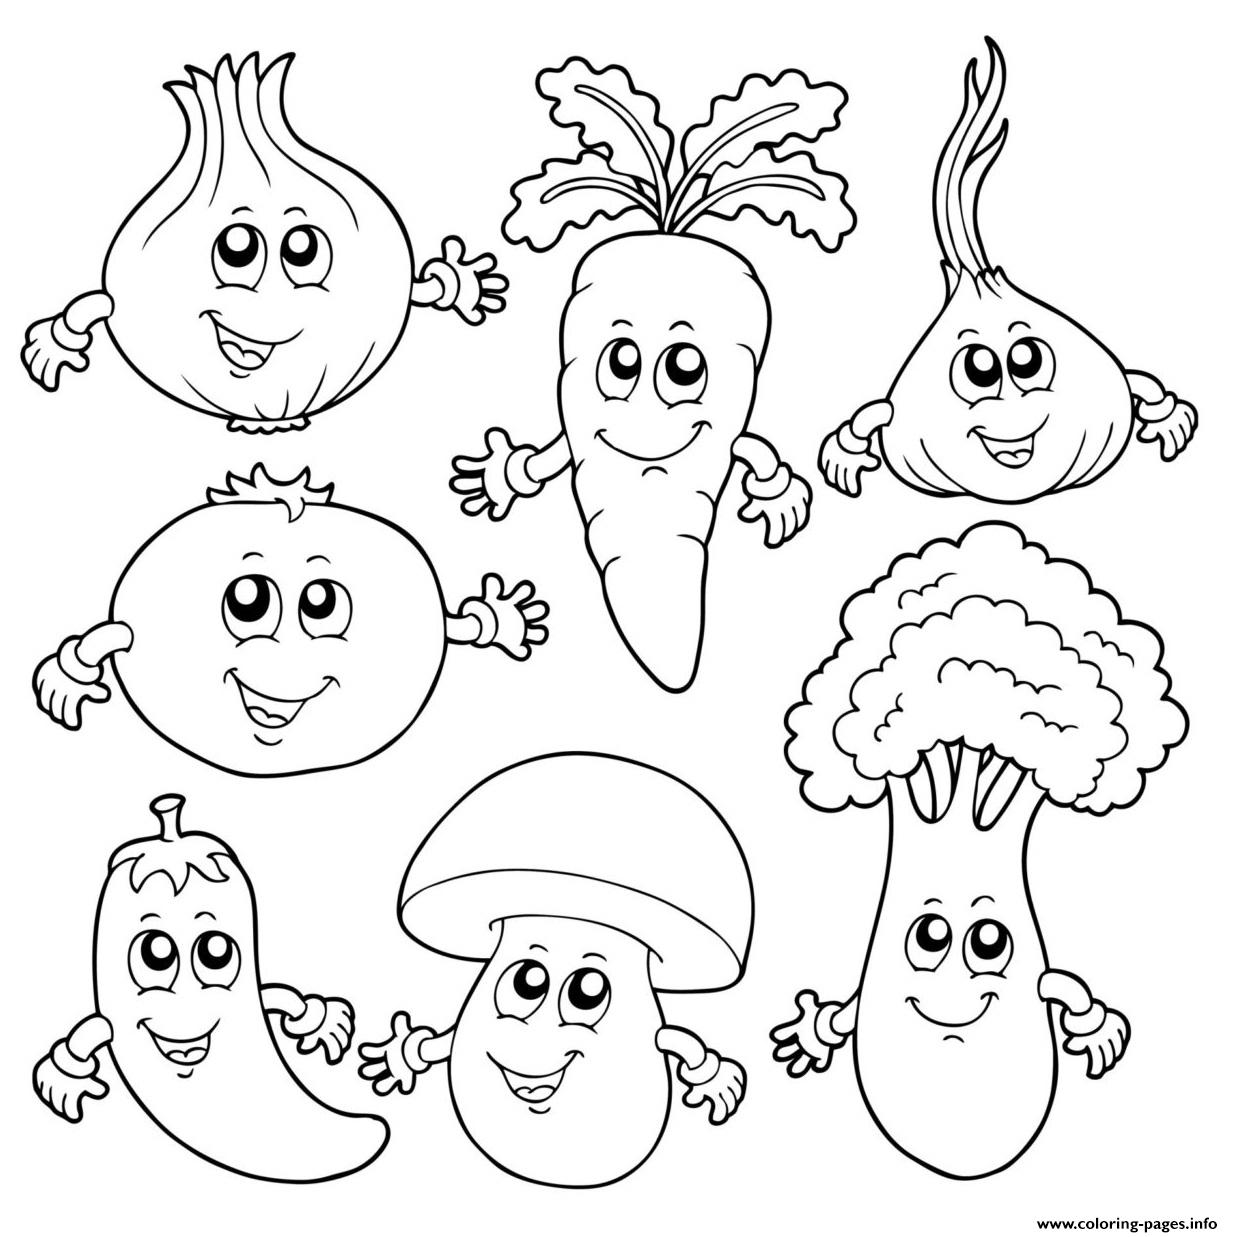 Cute Food Friends For Kids Coloring Pages Printable